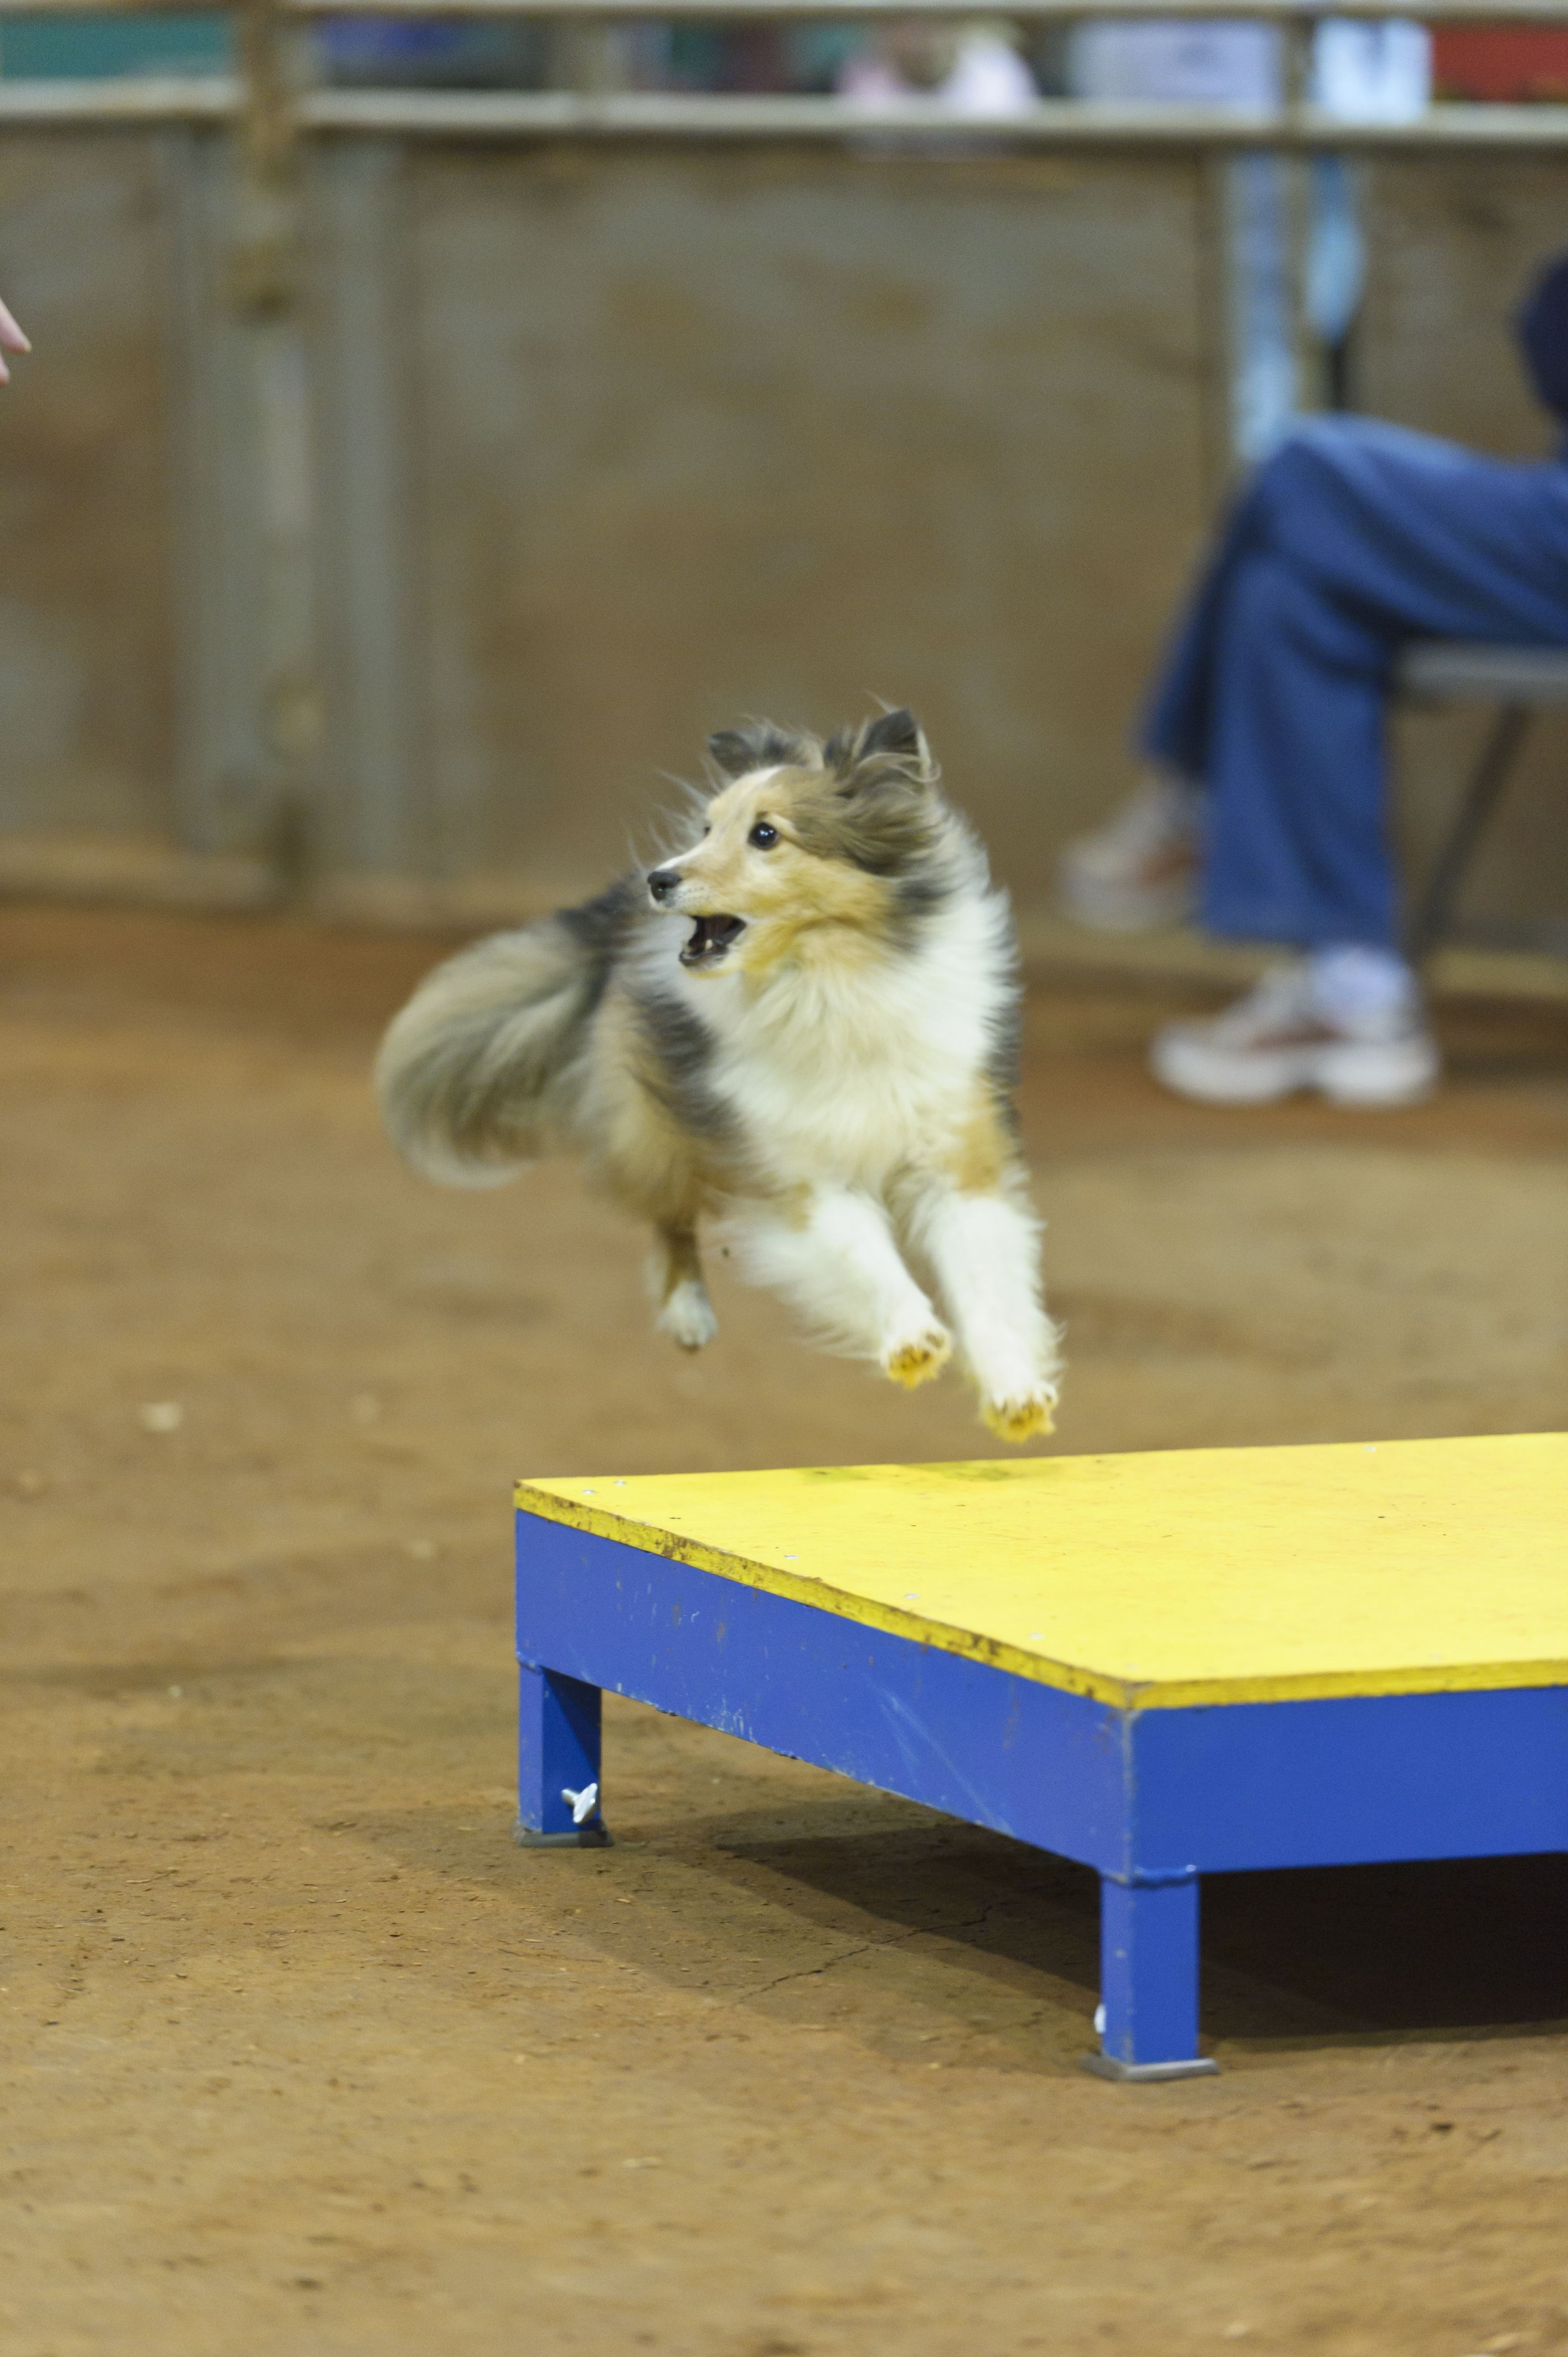 Deciphering The Akc S Lifetime Achievement Titles In Agility The